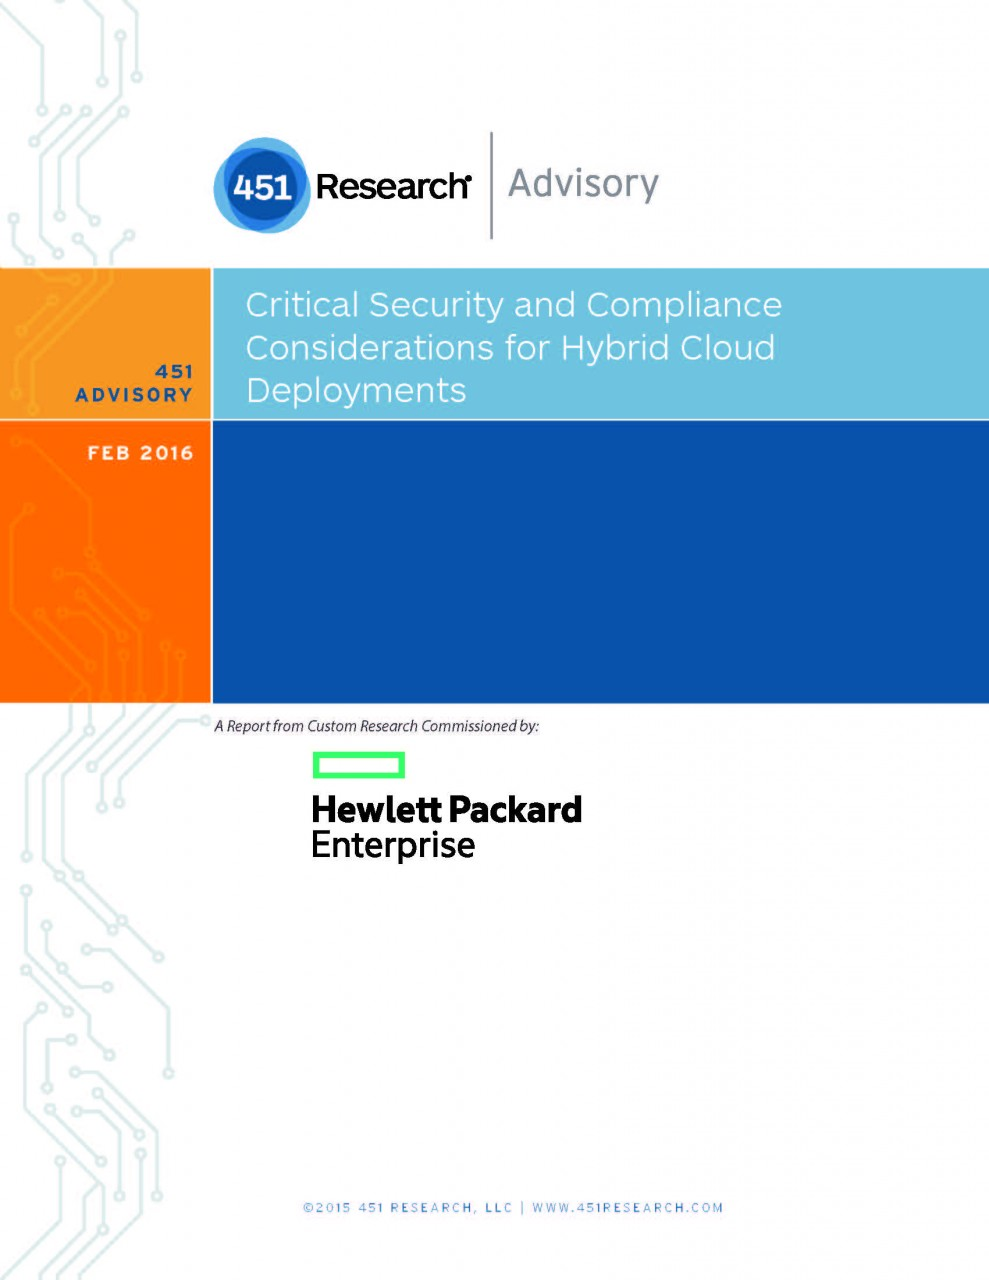 Critical Security and Compliance Considerations for Hybrid Cloud Deployments